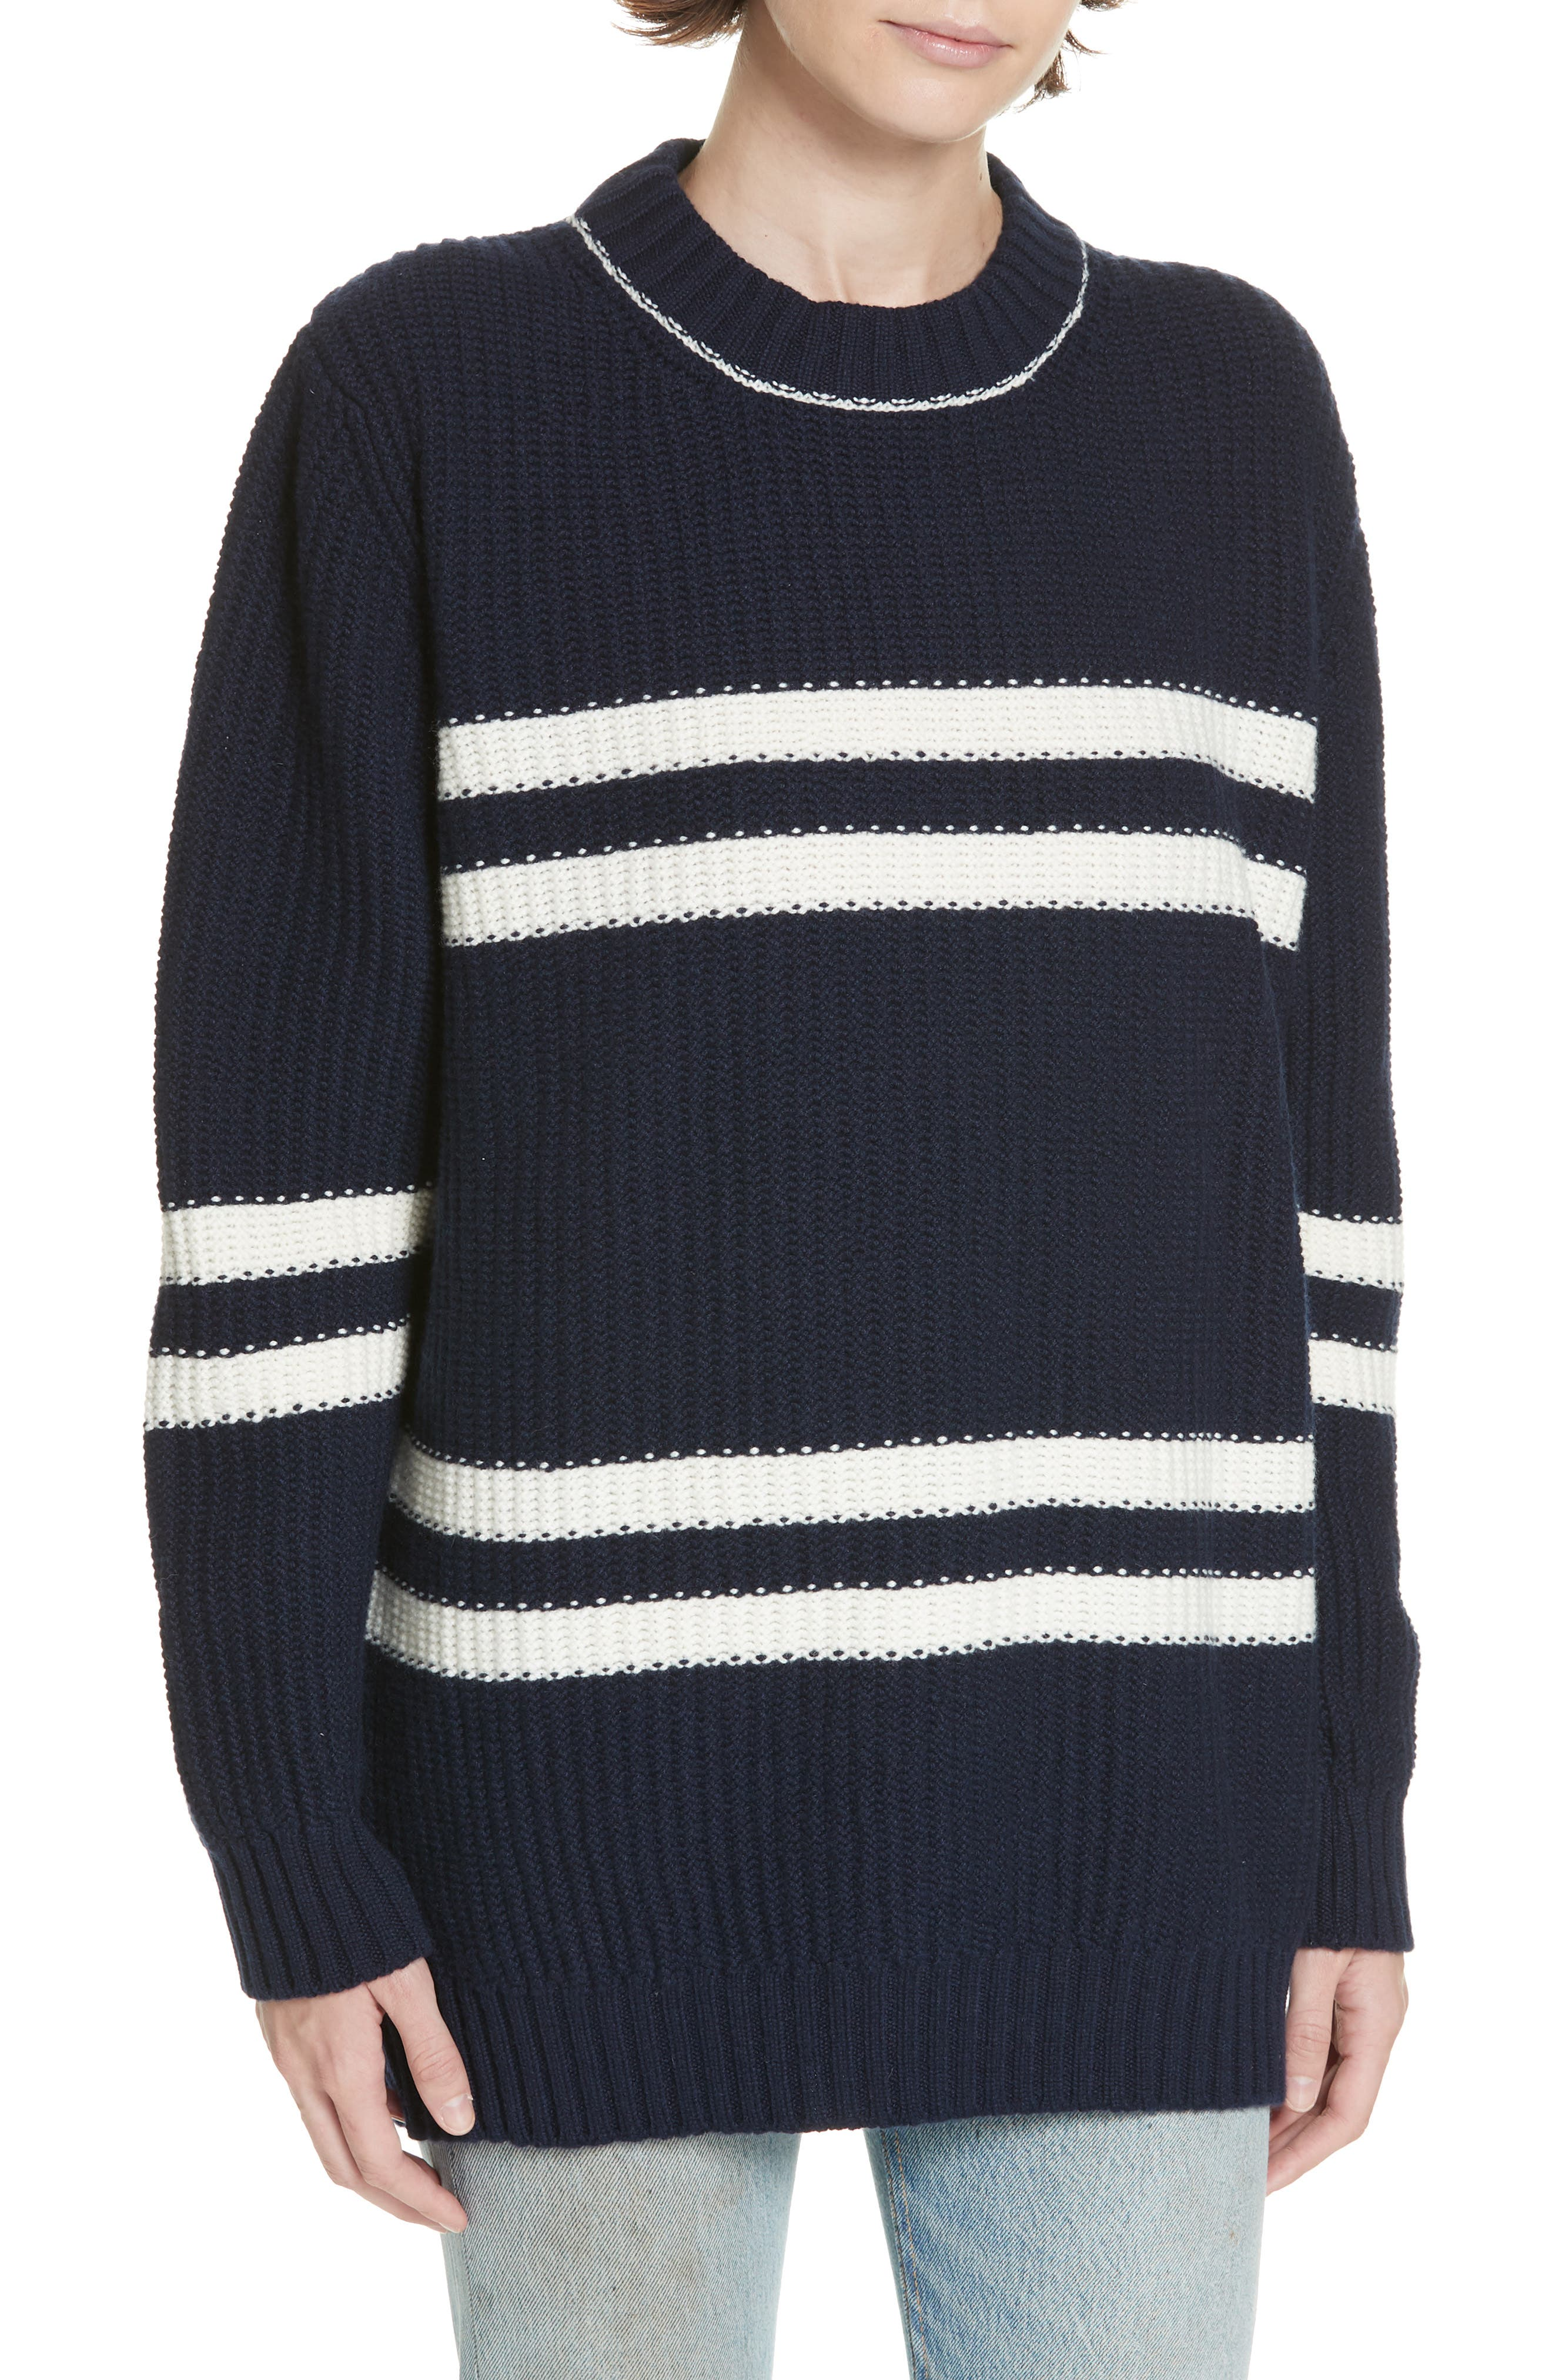 Tieve Stripe Cashmere & Cotton Sweater,                             Main thumbnail 1, color,                             NAVY/ ECRU